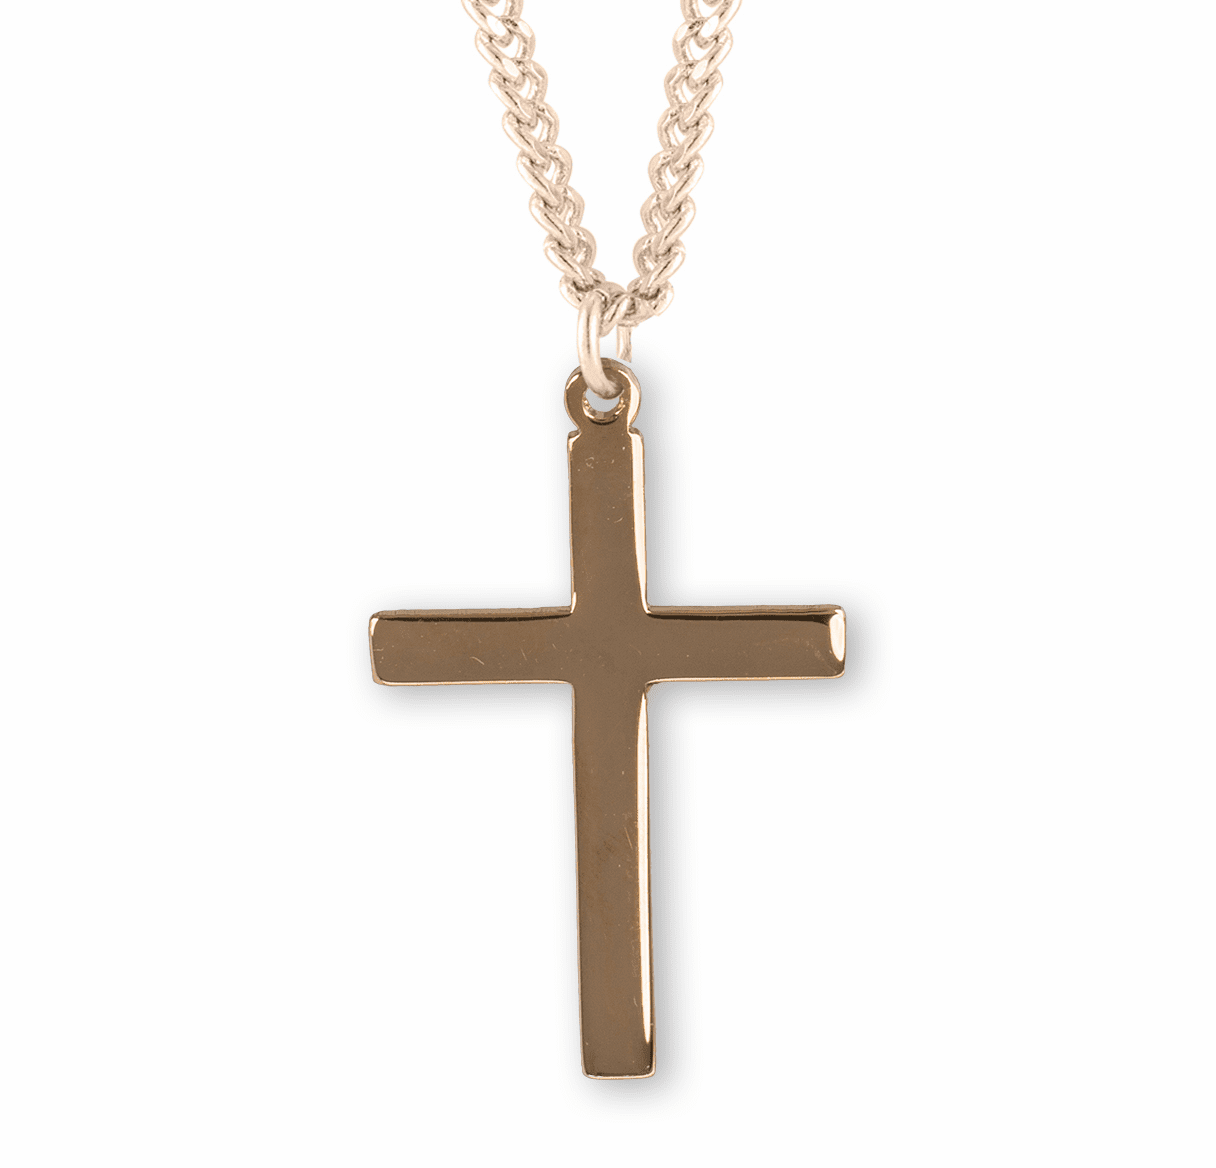 HMH Religious Gold Over Sterling Silver Plain Cross Necklace